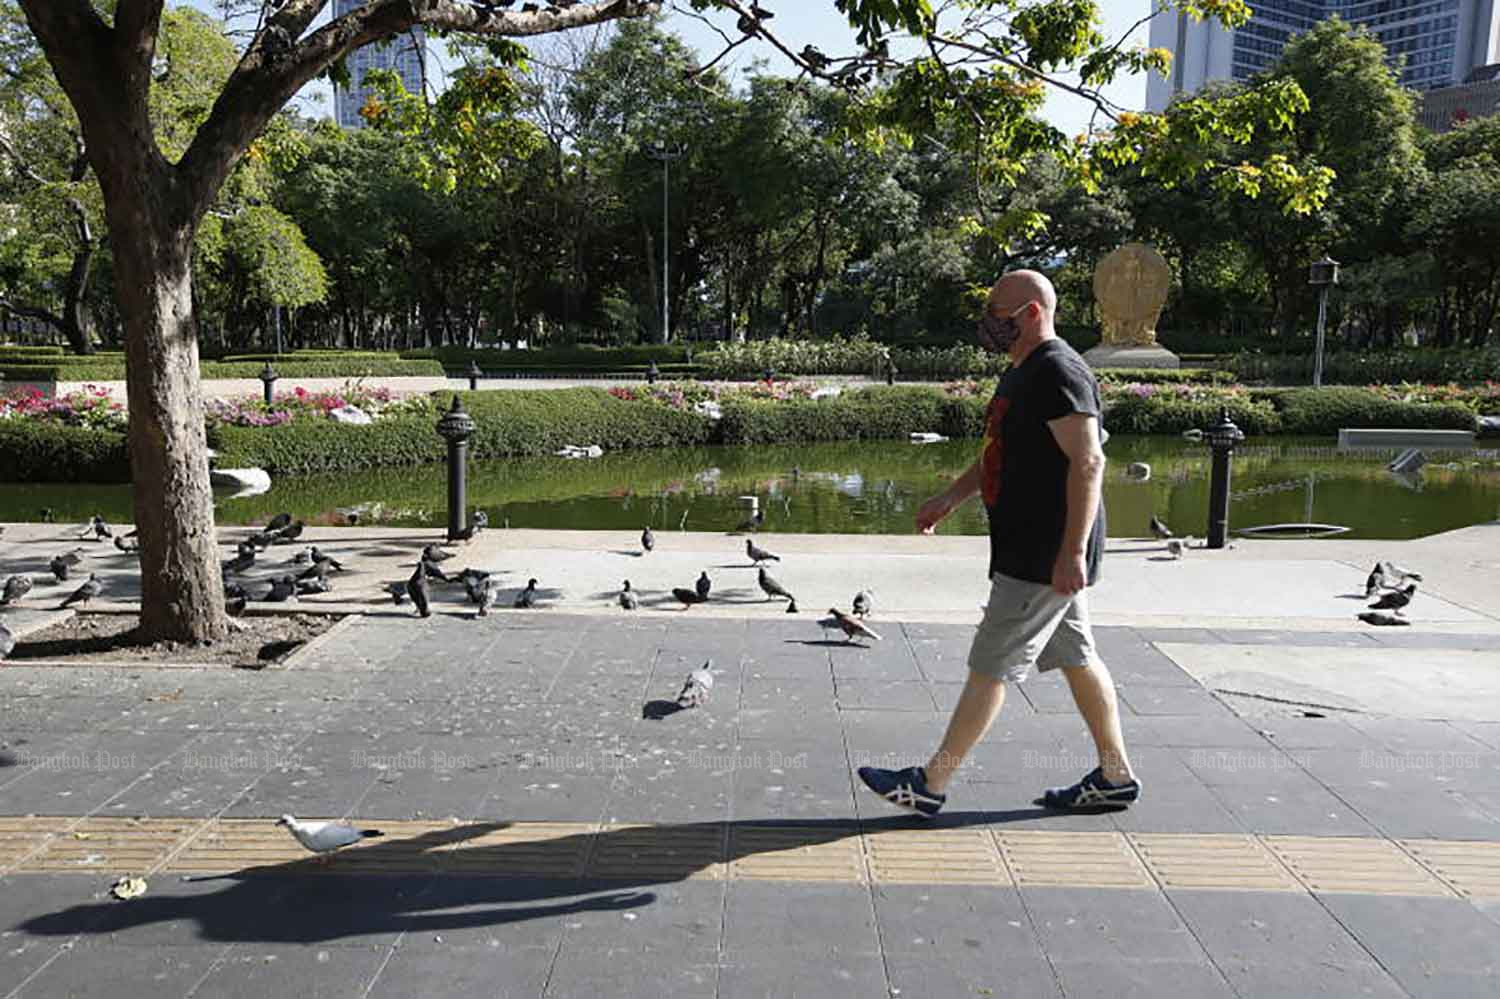 A man walks past the closed Benchasiri Park on Sukhumvit Road in Bangkok on Monday, when the country logged 38 Covid-19 fatalities and 2,230 new cases. (Photo: Wichan Charoenkiatpakul)